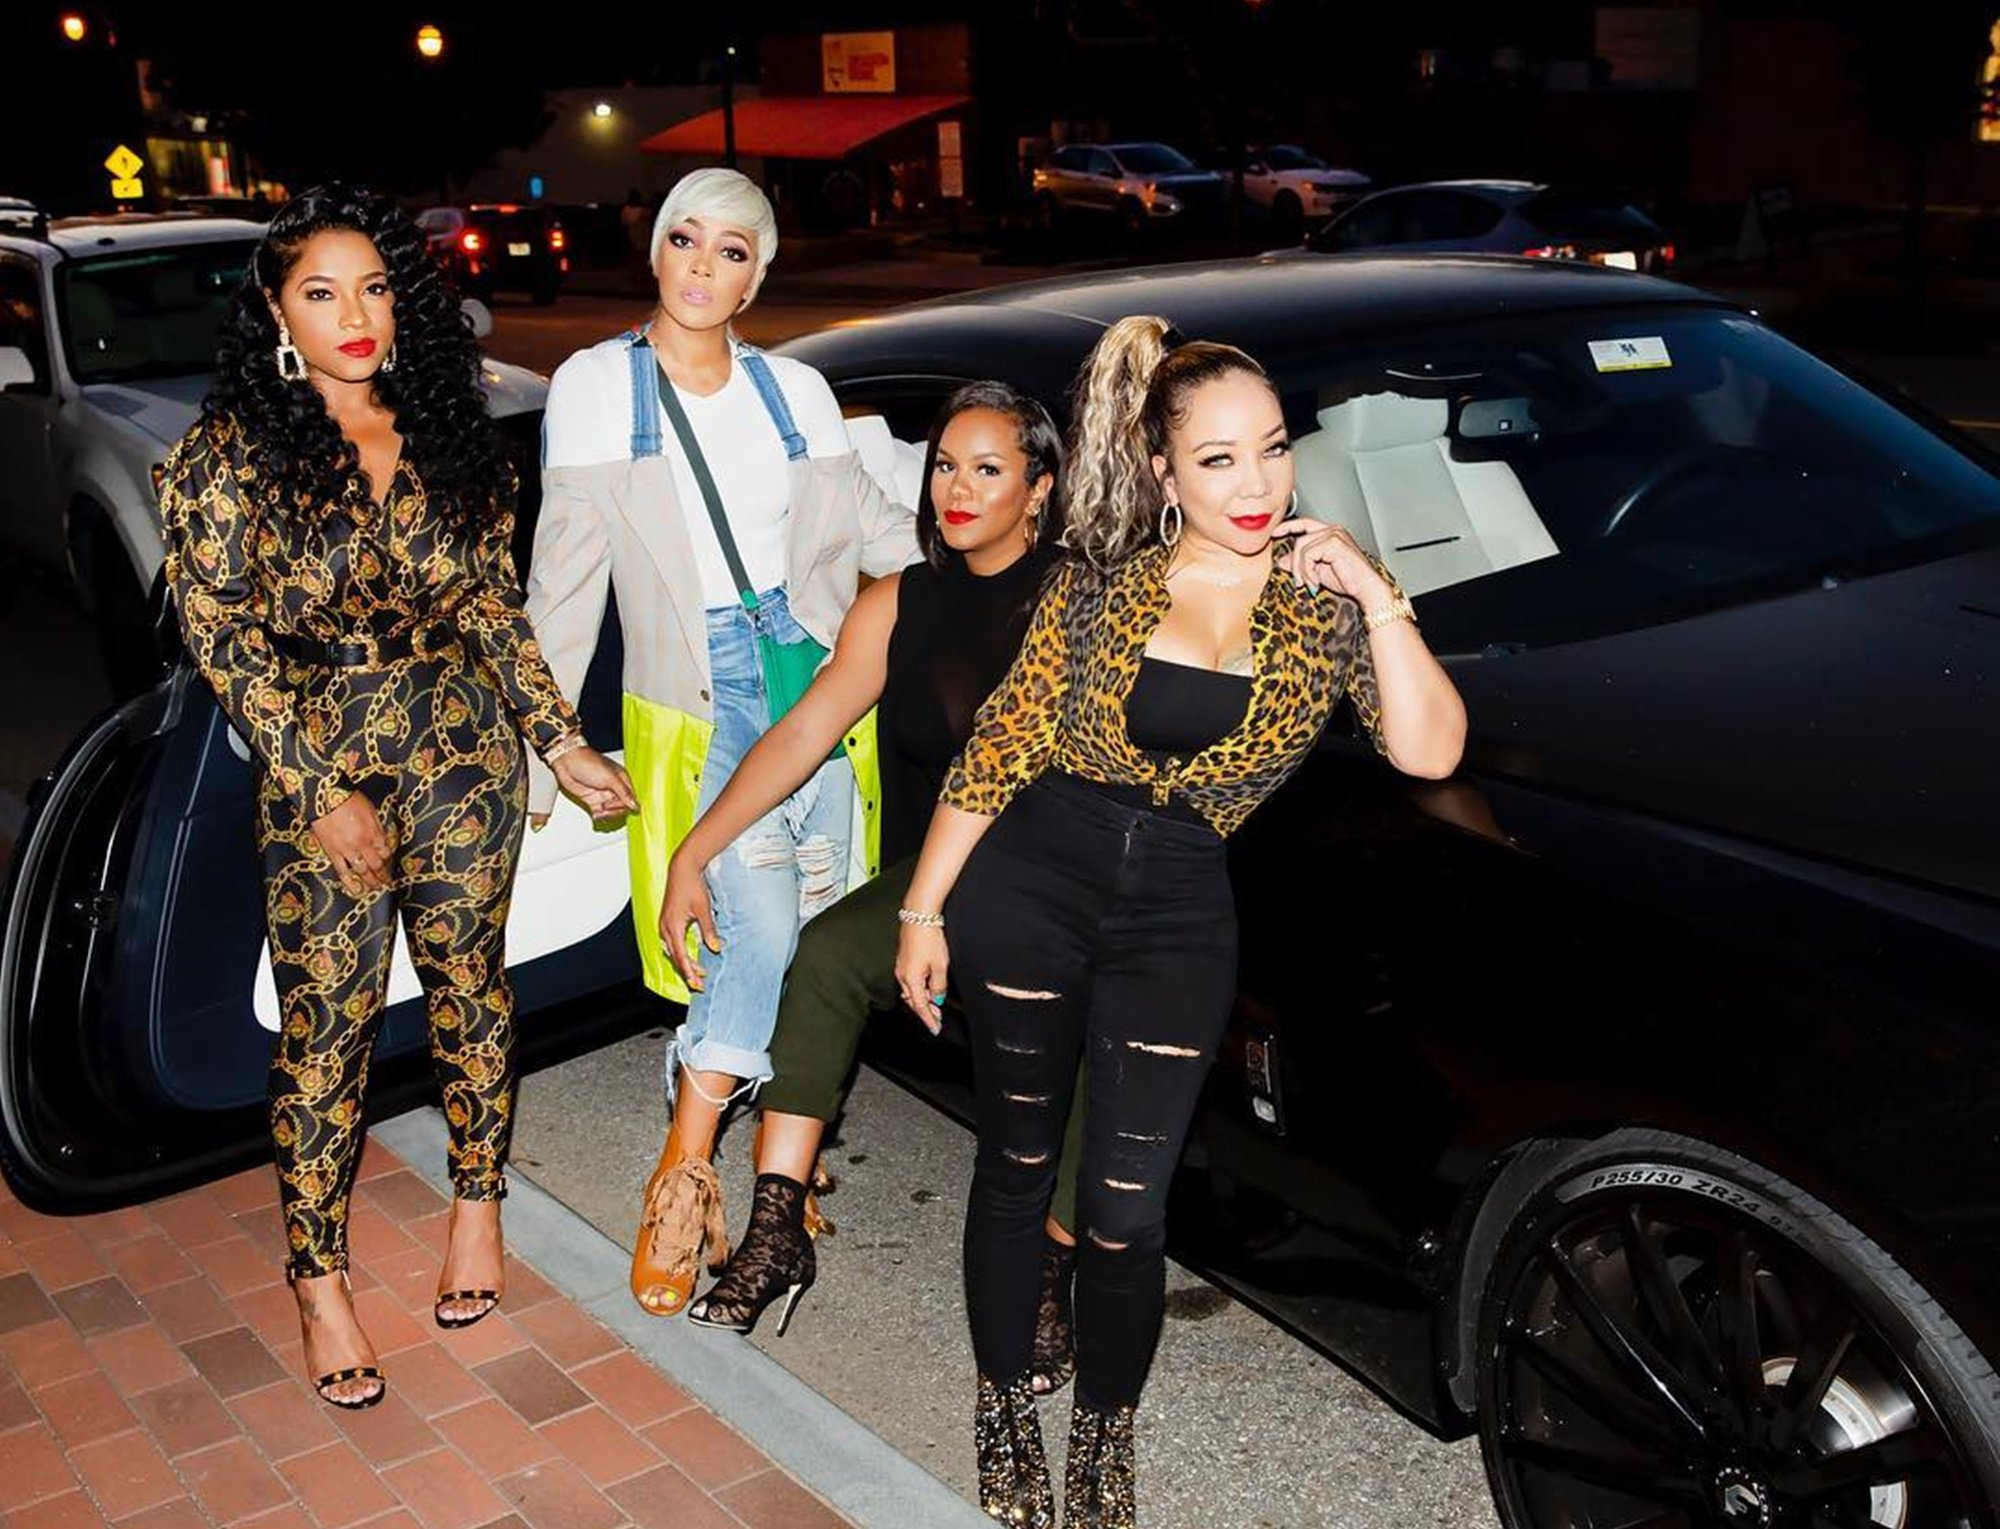 Tiny Harris Flaunts An Amazing Look In The Latest Video With Marlo Hampton And The Crew On Set For 'Games People Play'